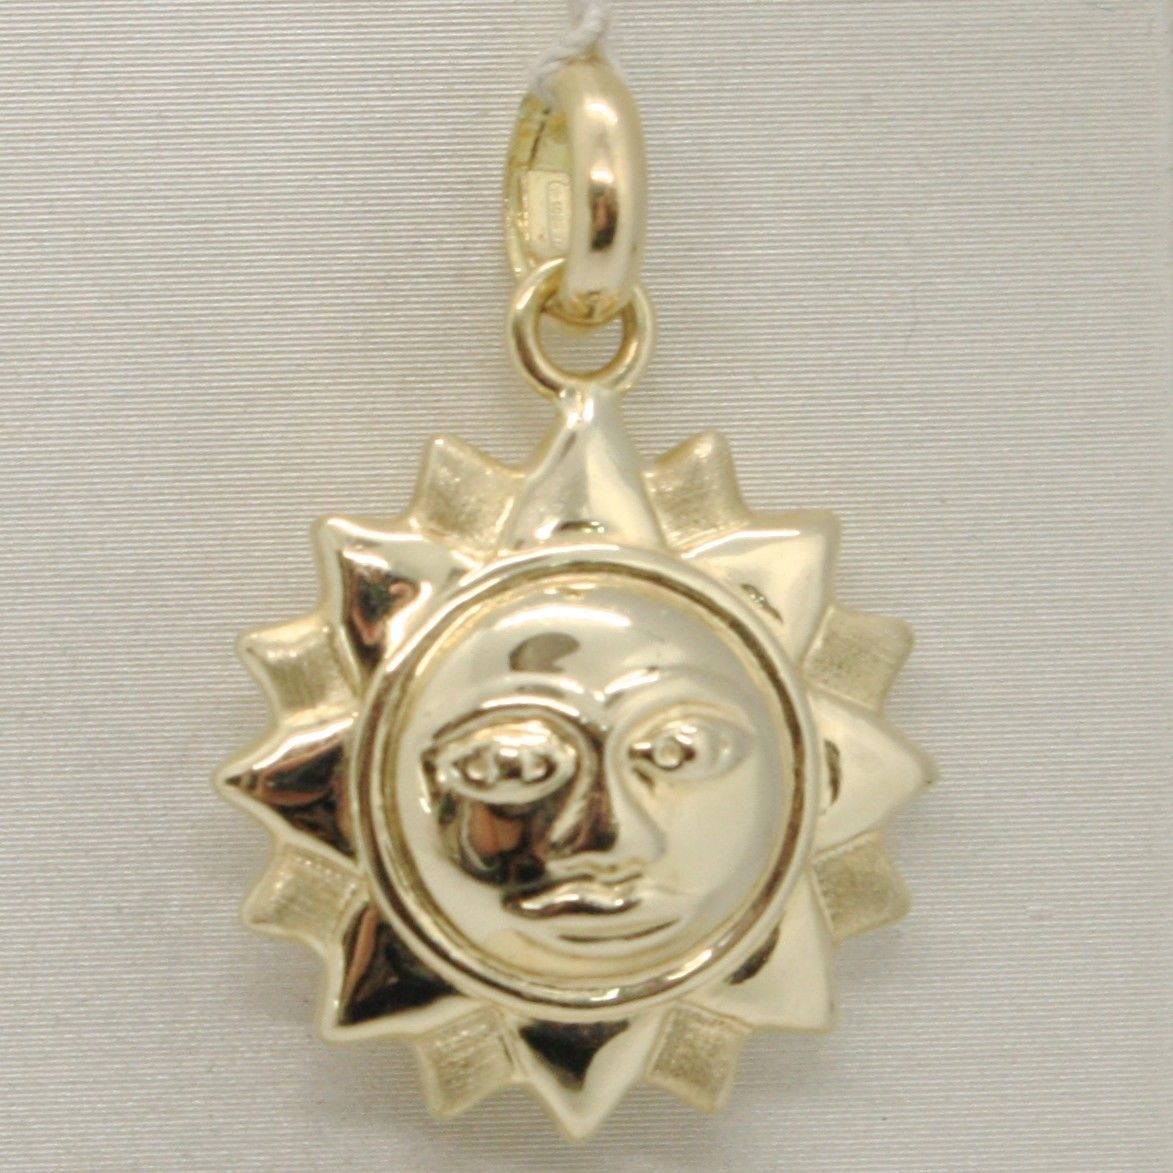 18K YELLOW GOLD ROUNDED SUN CHARM PENDANT, SMILING FACE, SMOOTH, MADE IN ITALY